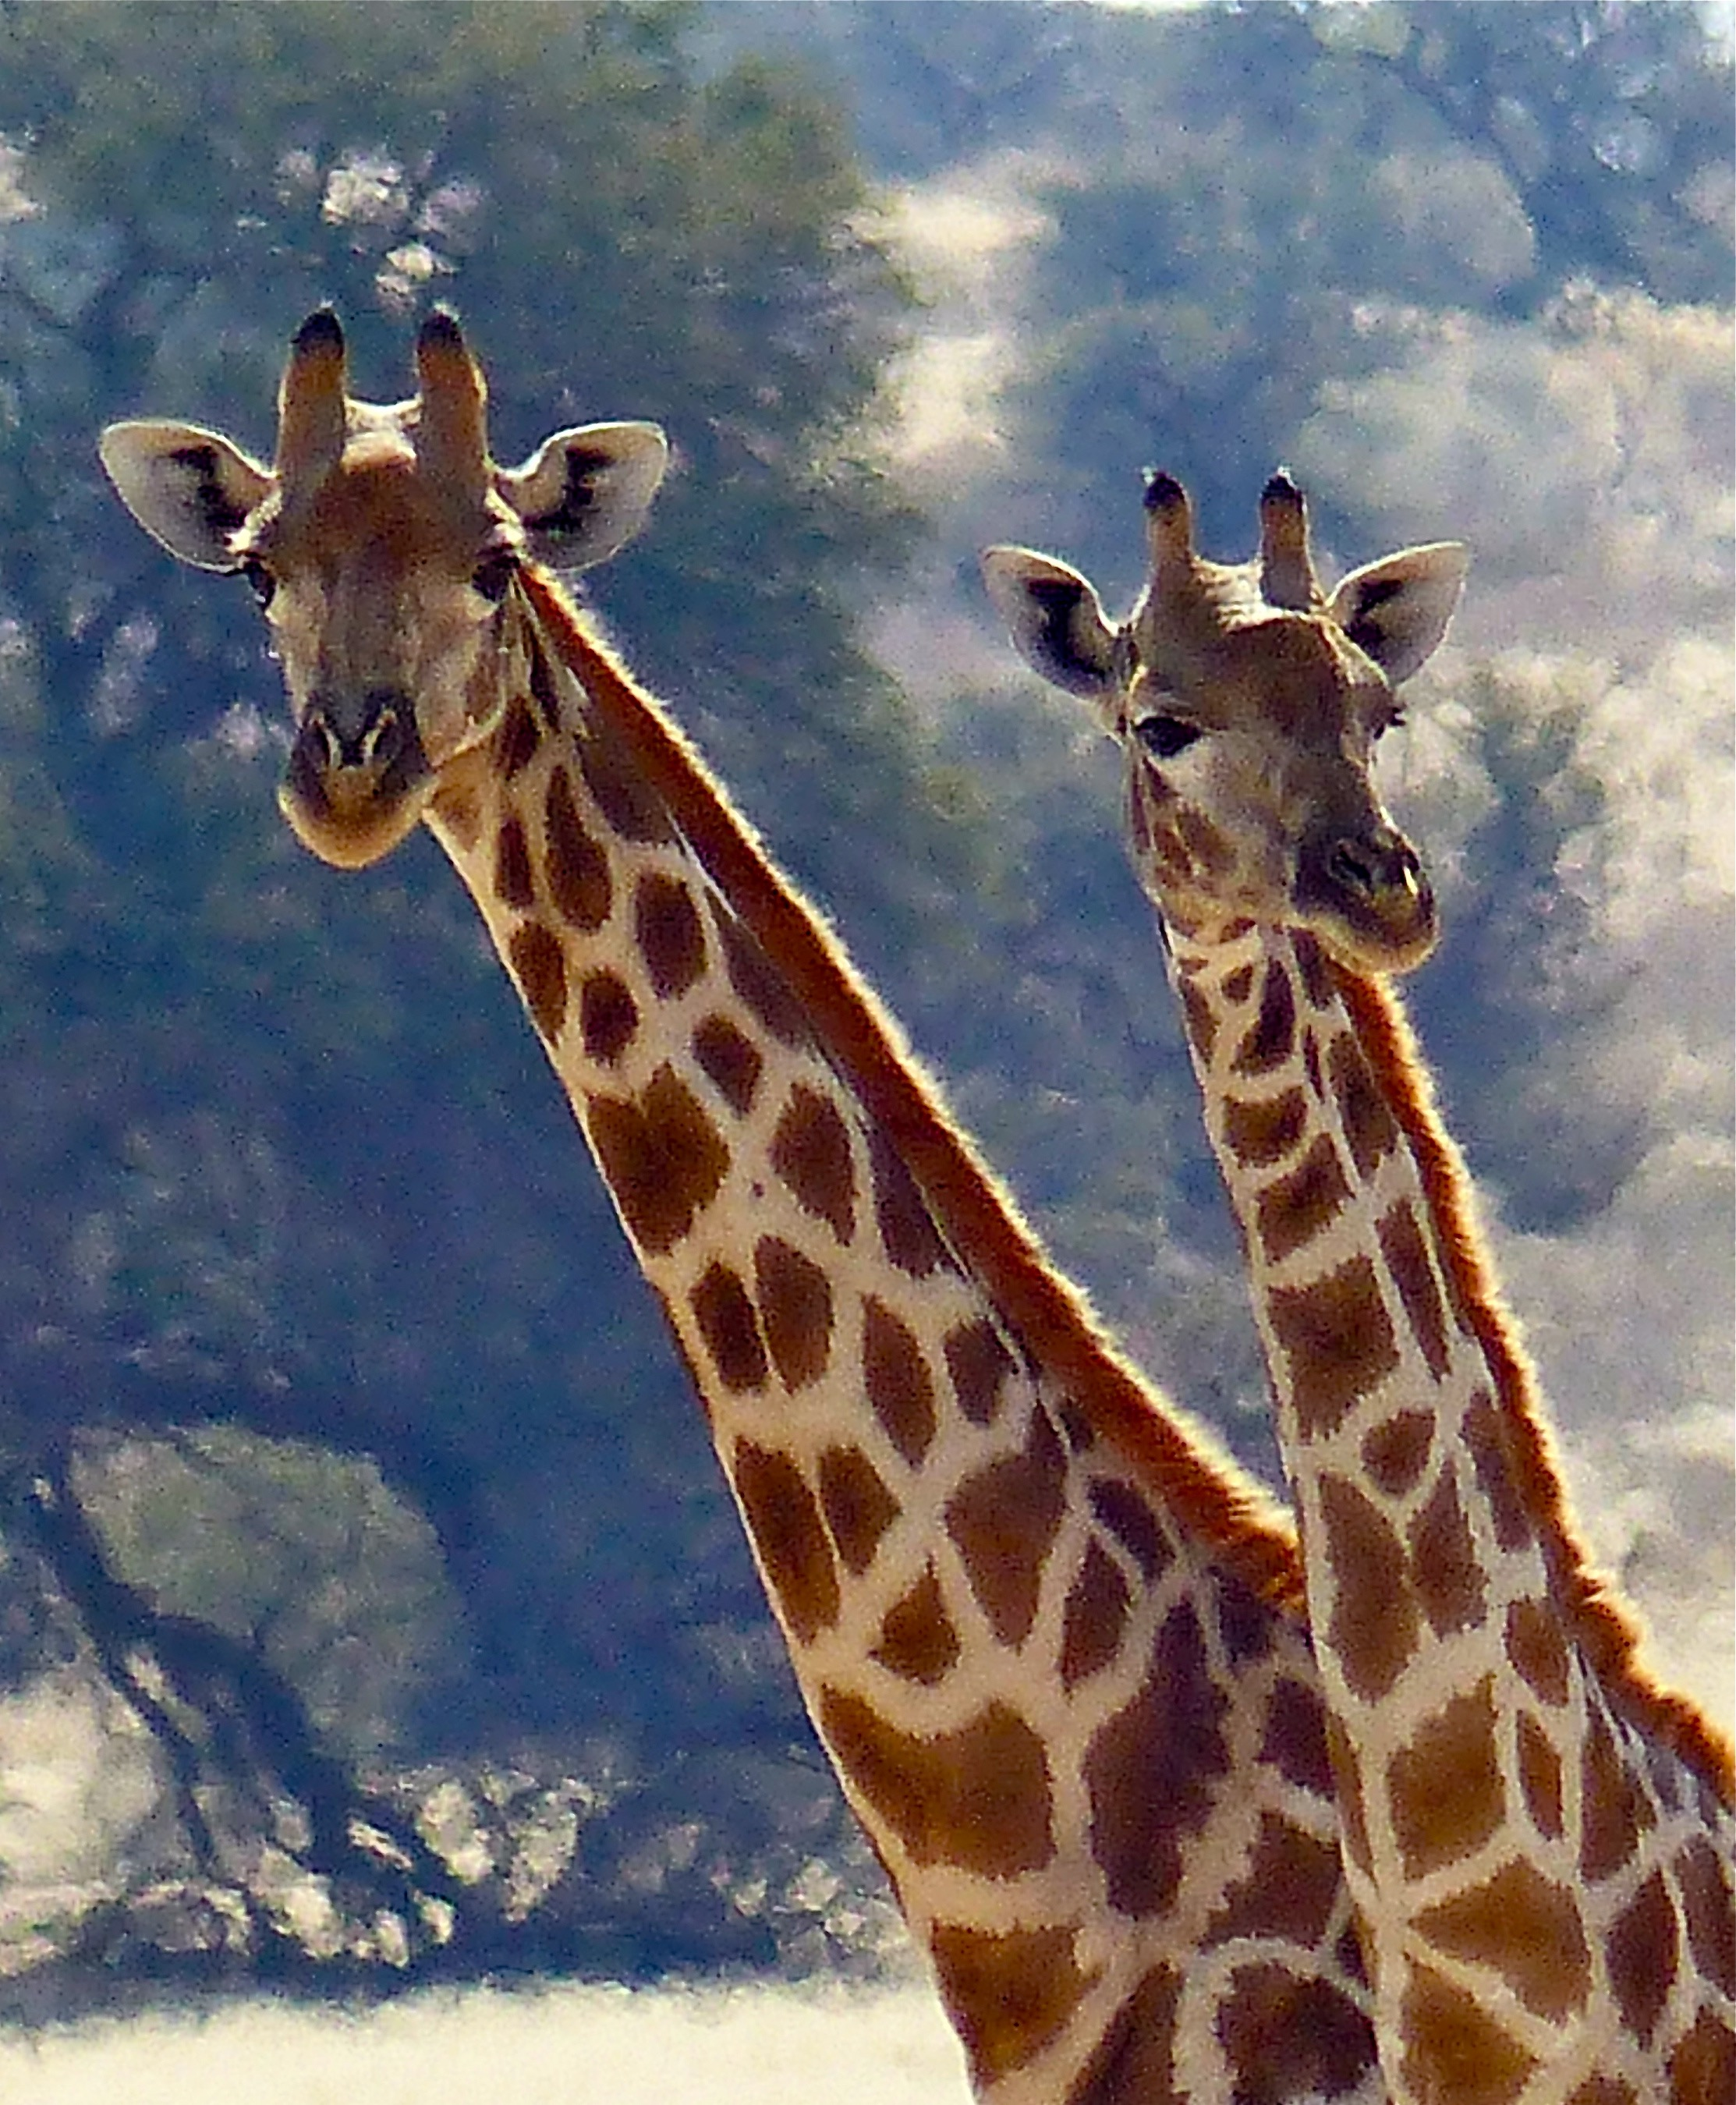 Giraffes are naturally curious. Be very quiet when watching giraffes in the wild, even in your car. Wait and be patient. You may find the giraffes come over to watch you. Image: ©R.Kravette for Destination: wildlife